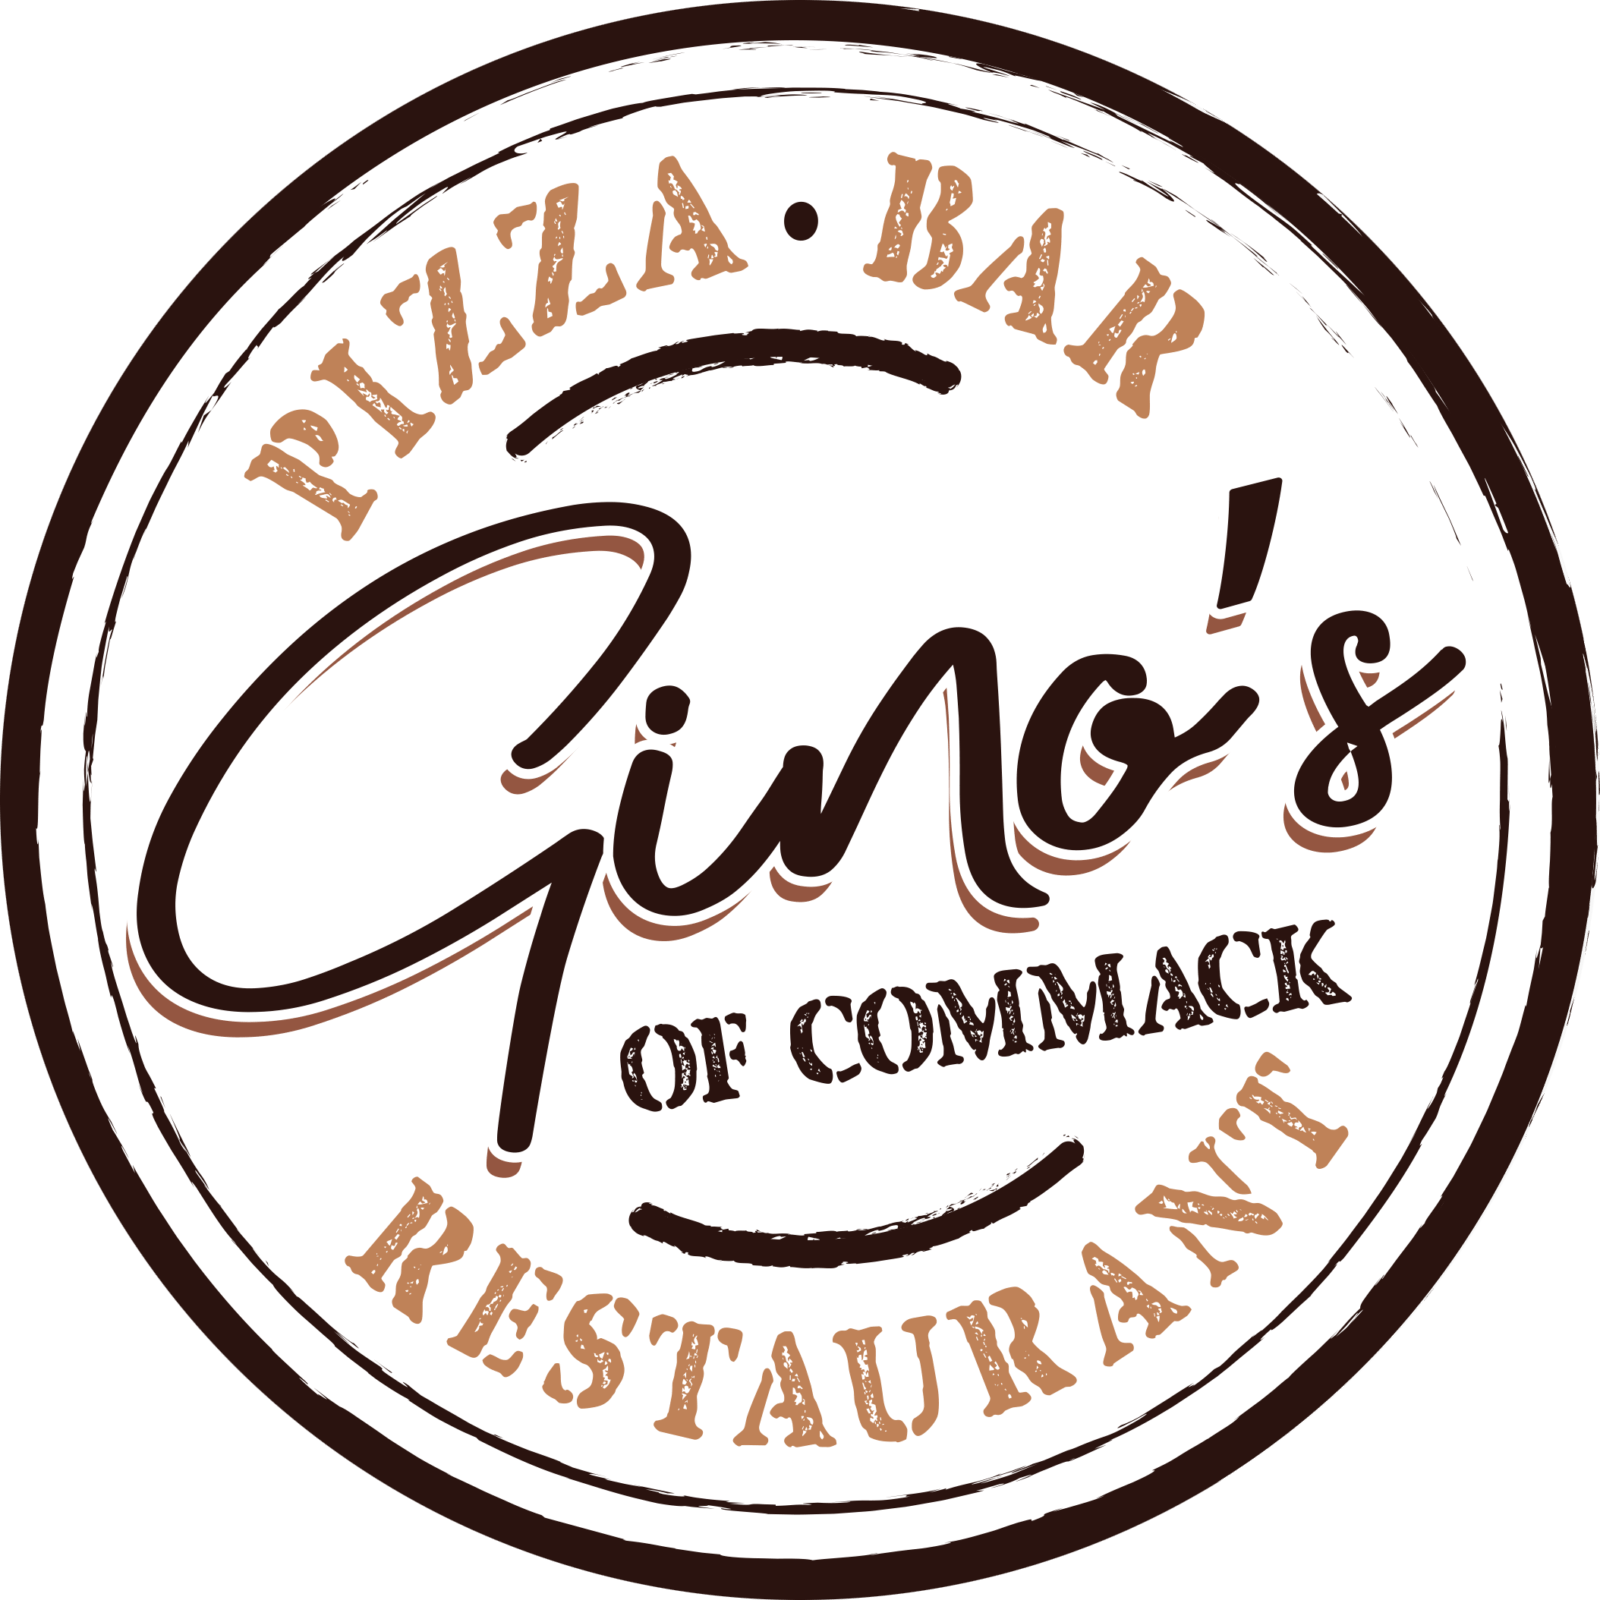 Gino's of Commack